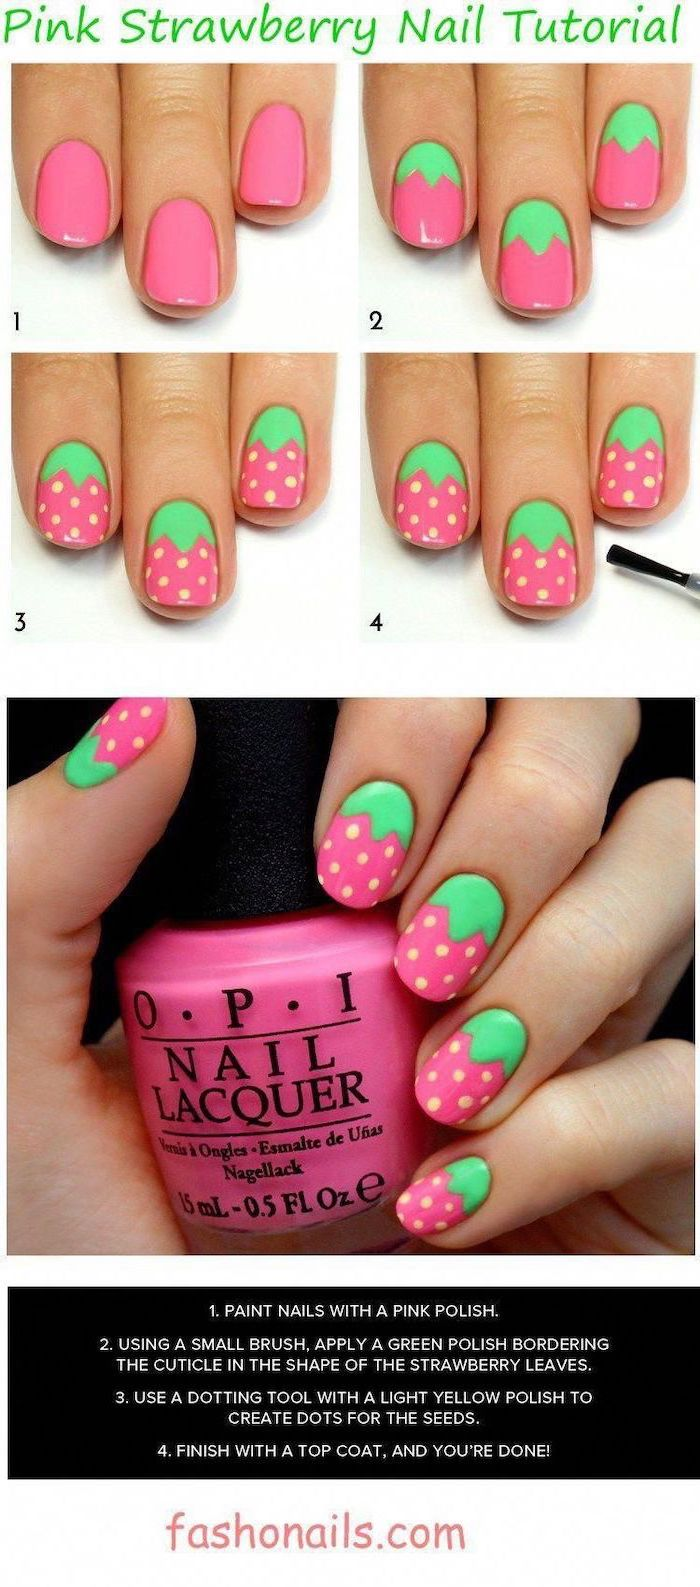 step by step diy tutorial, pink and green nail polish, beach nail designs, strawberries decorations